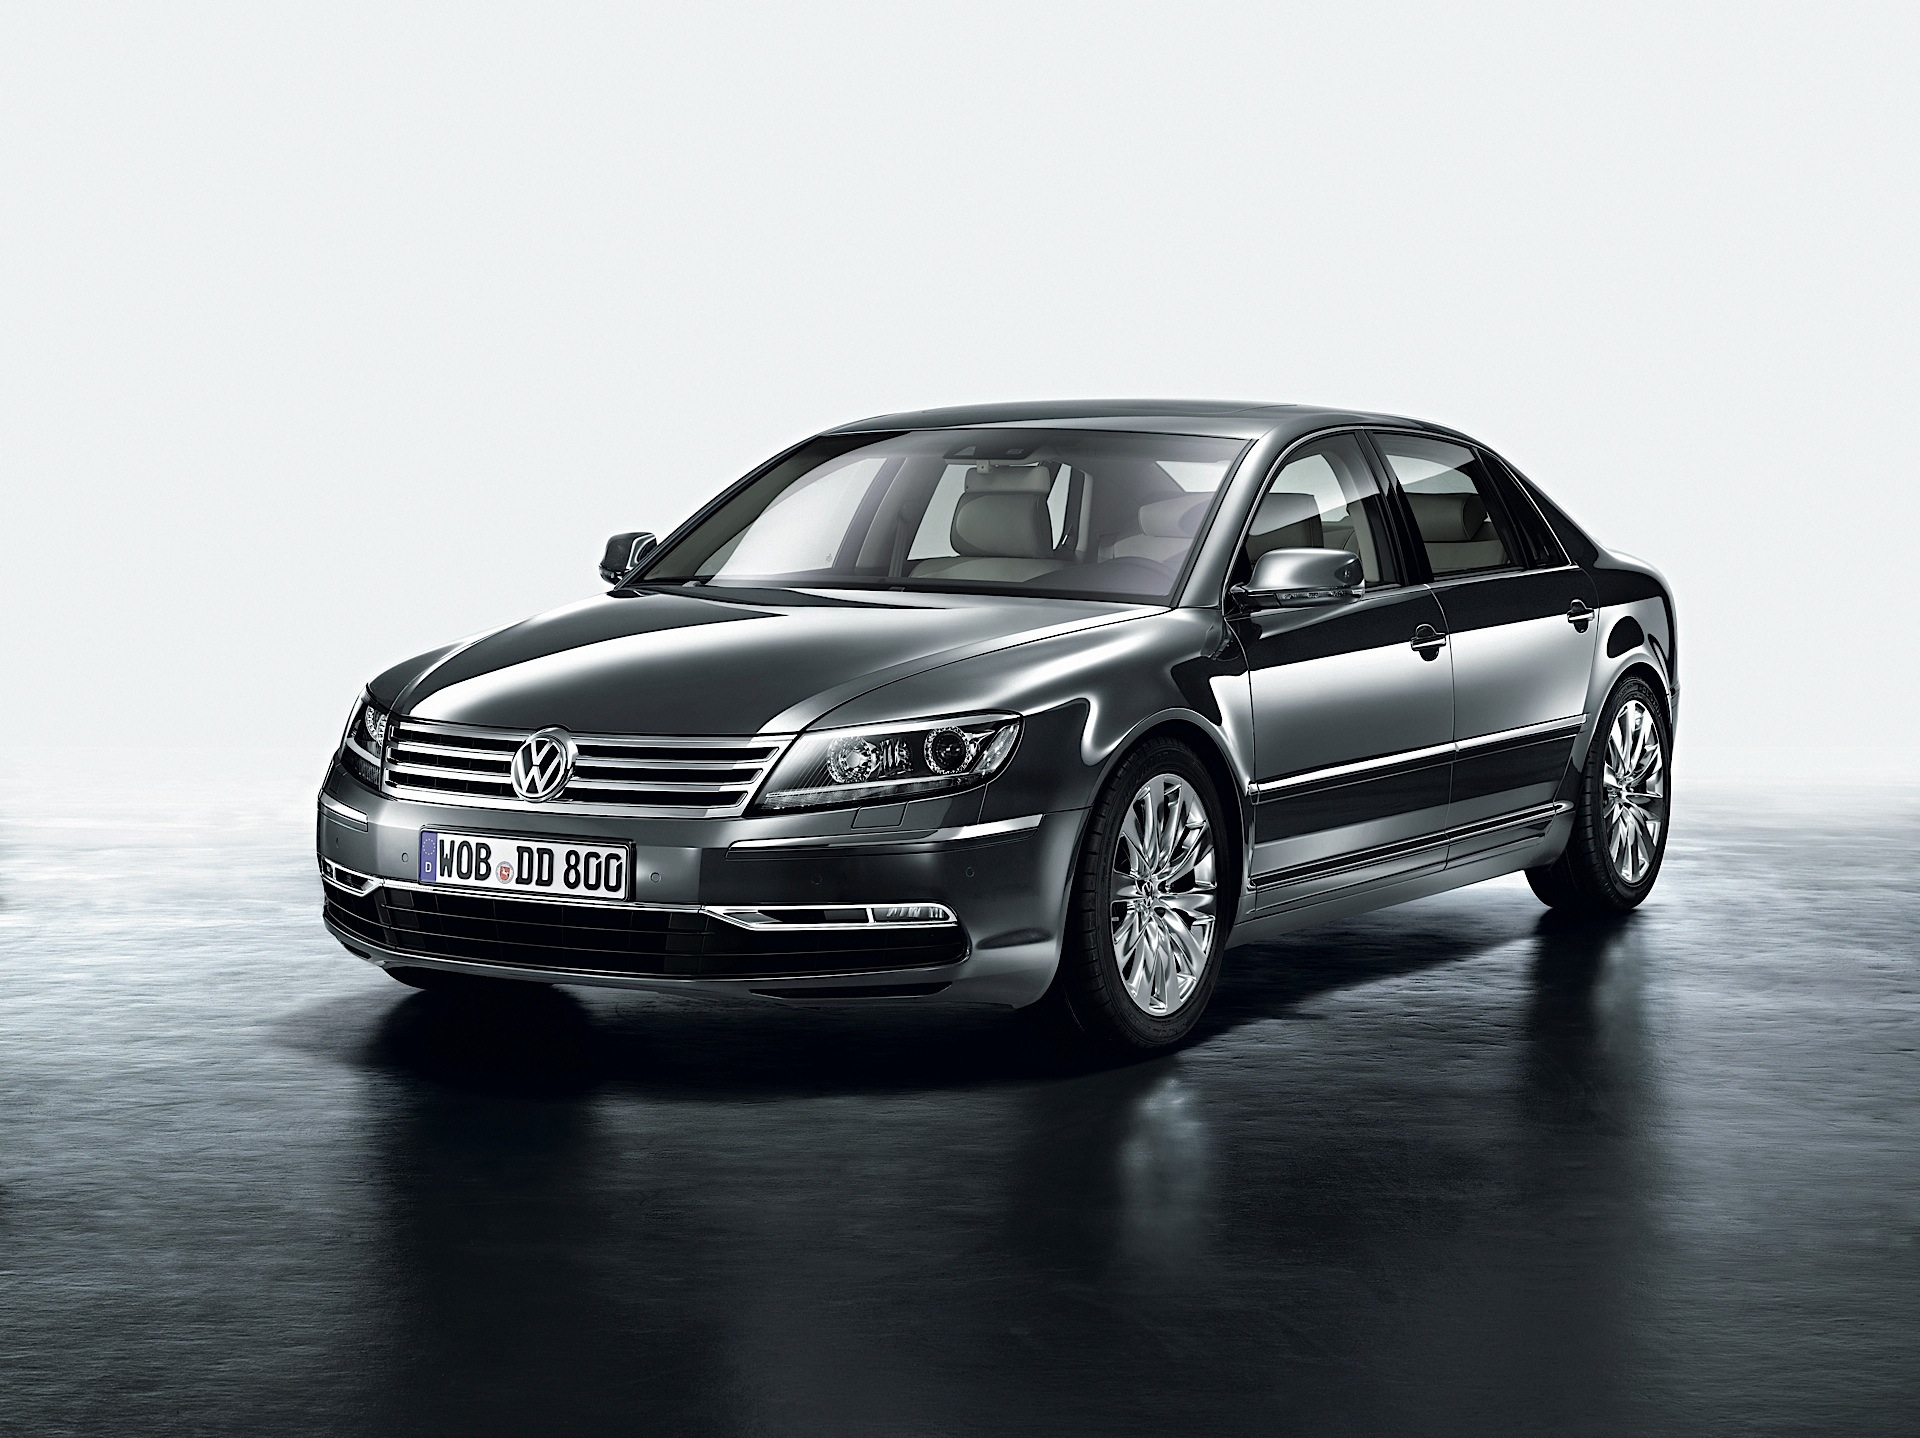 Volkswagen Phaeton 3.6 2013 photo - 12